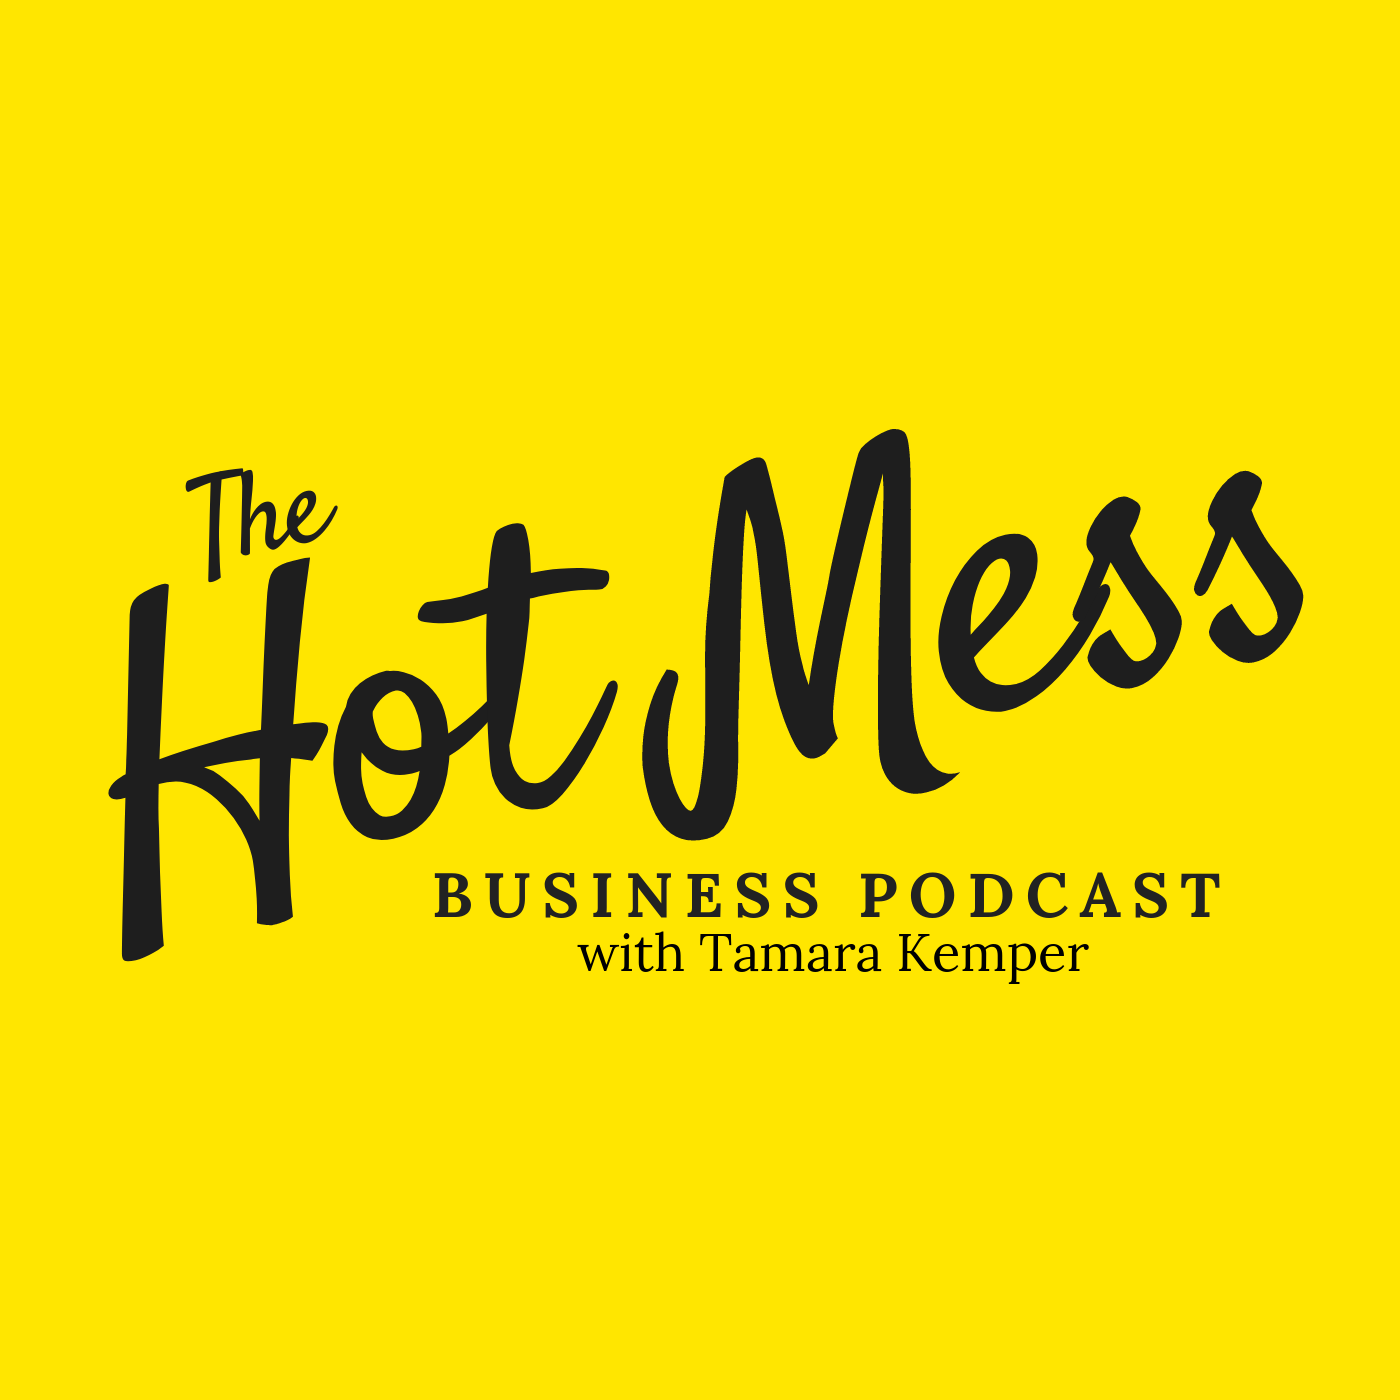 The Hot Mess Business Podcast show art